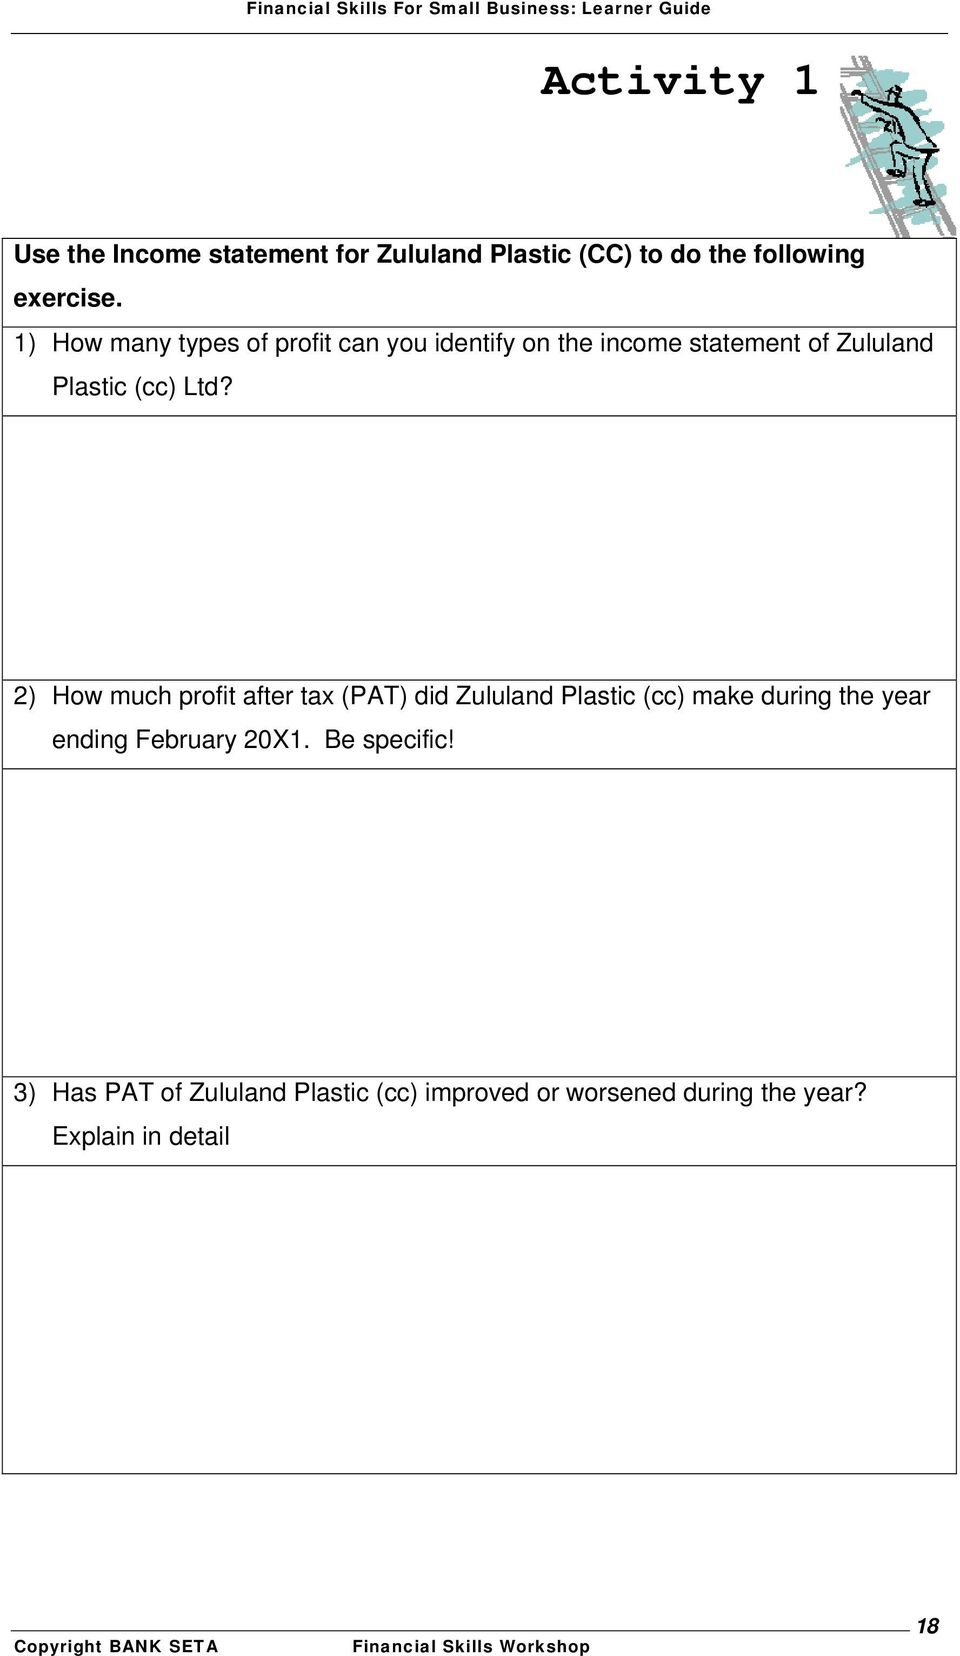 2) How much profit after tax (PAT) did Zululand Plastic (cc) make during the year ending February